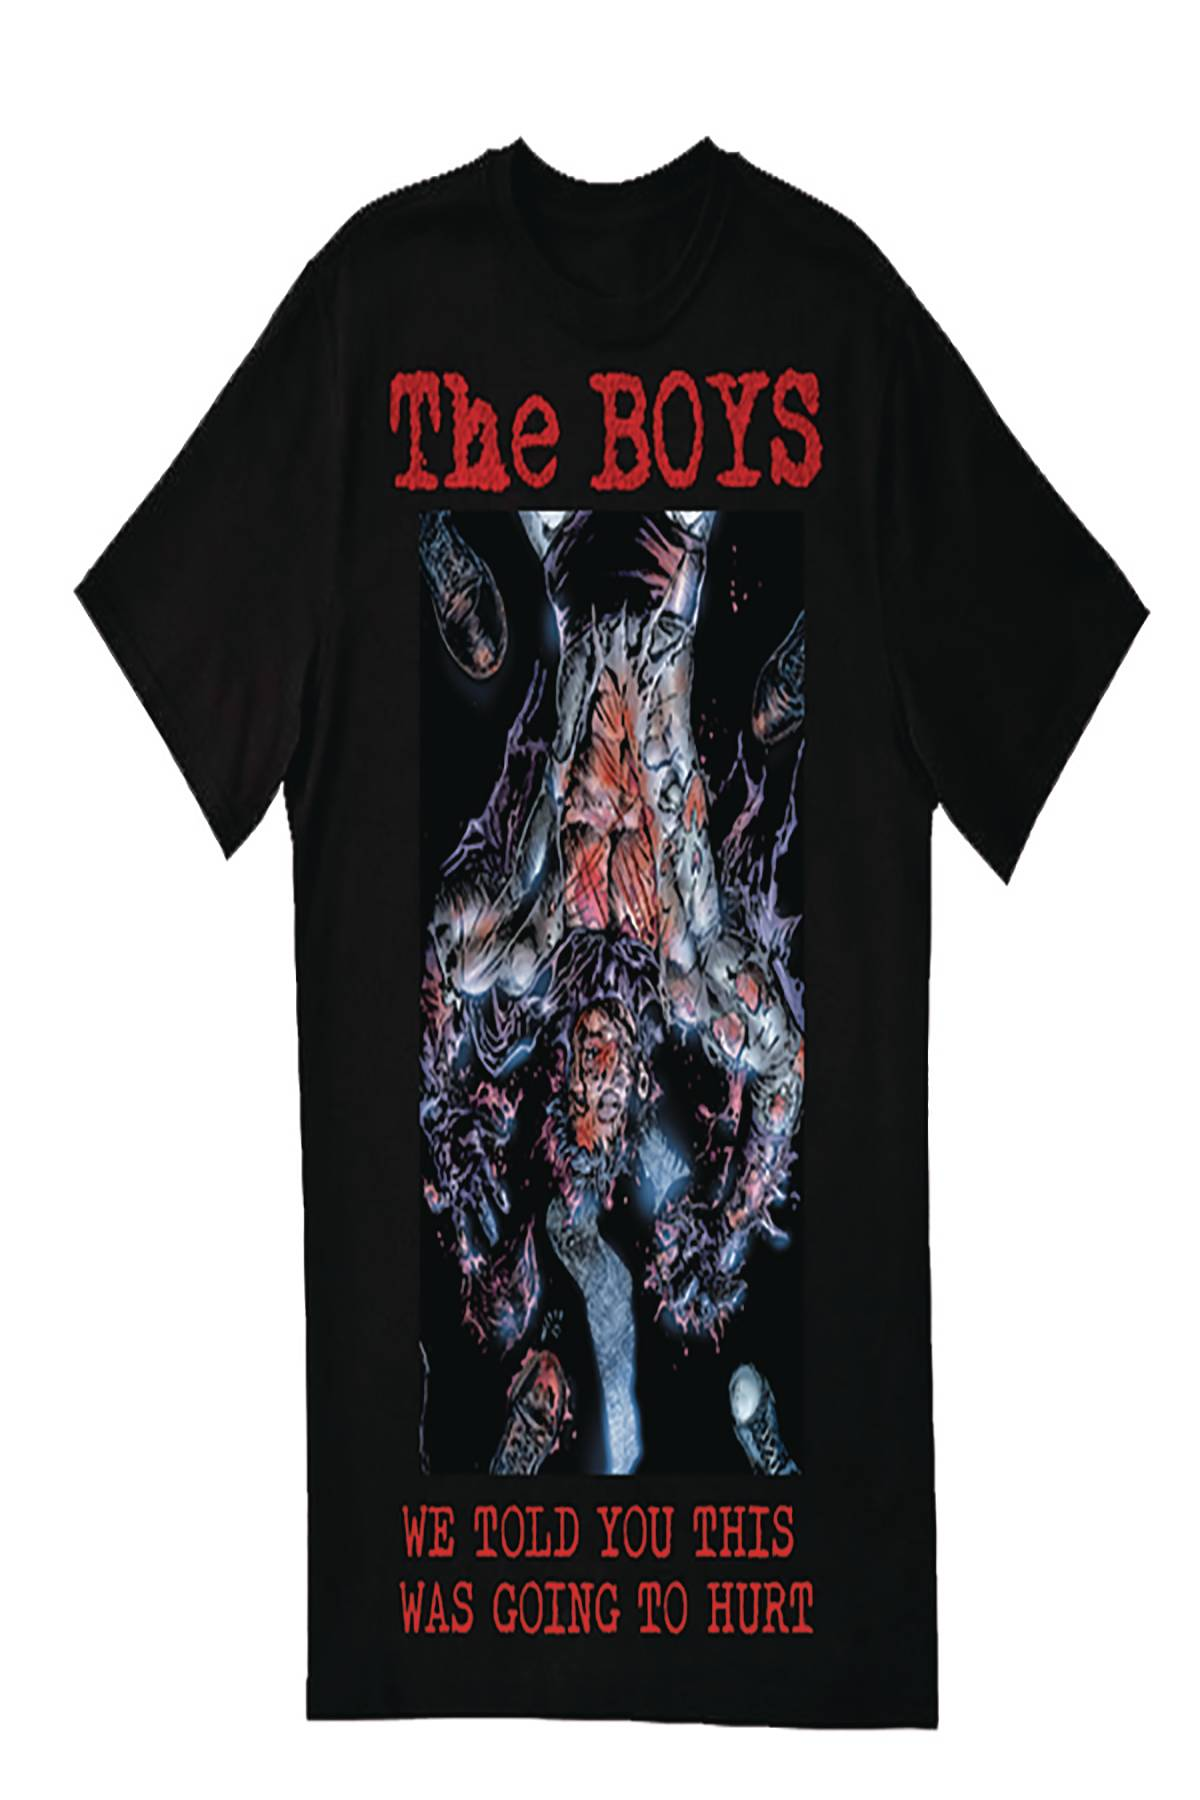 THE BOYS ISSUE #7 COVER T/S UNISEX S